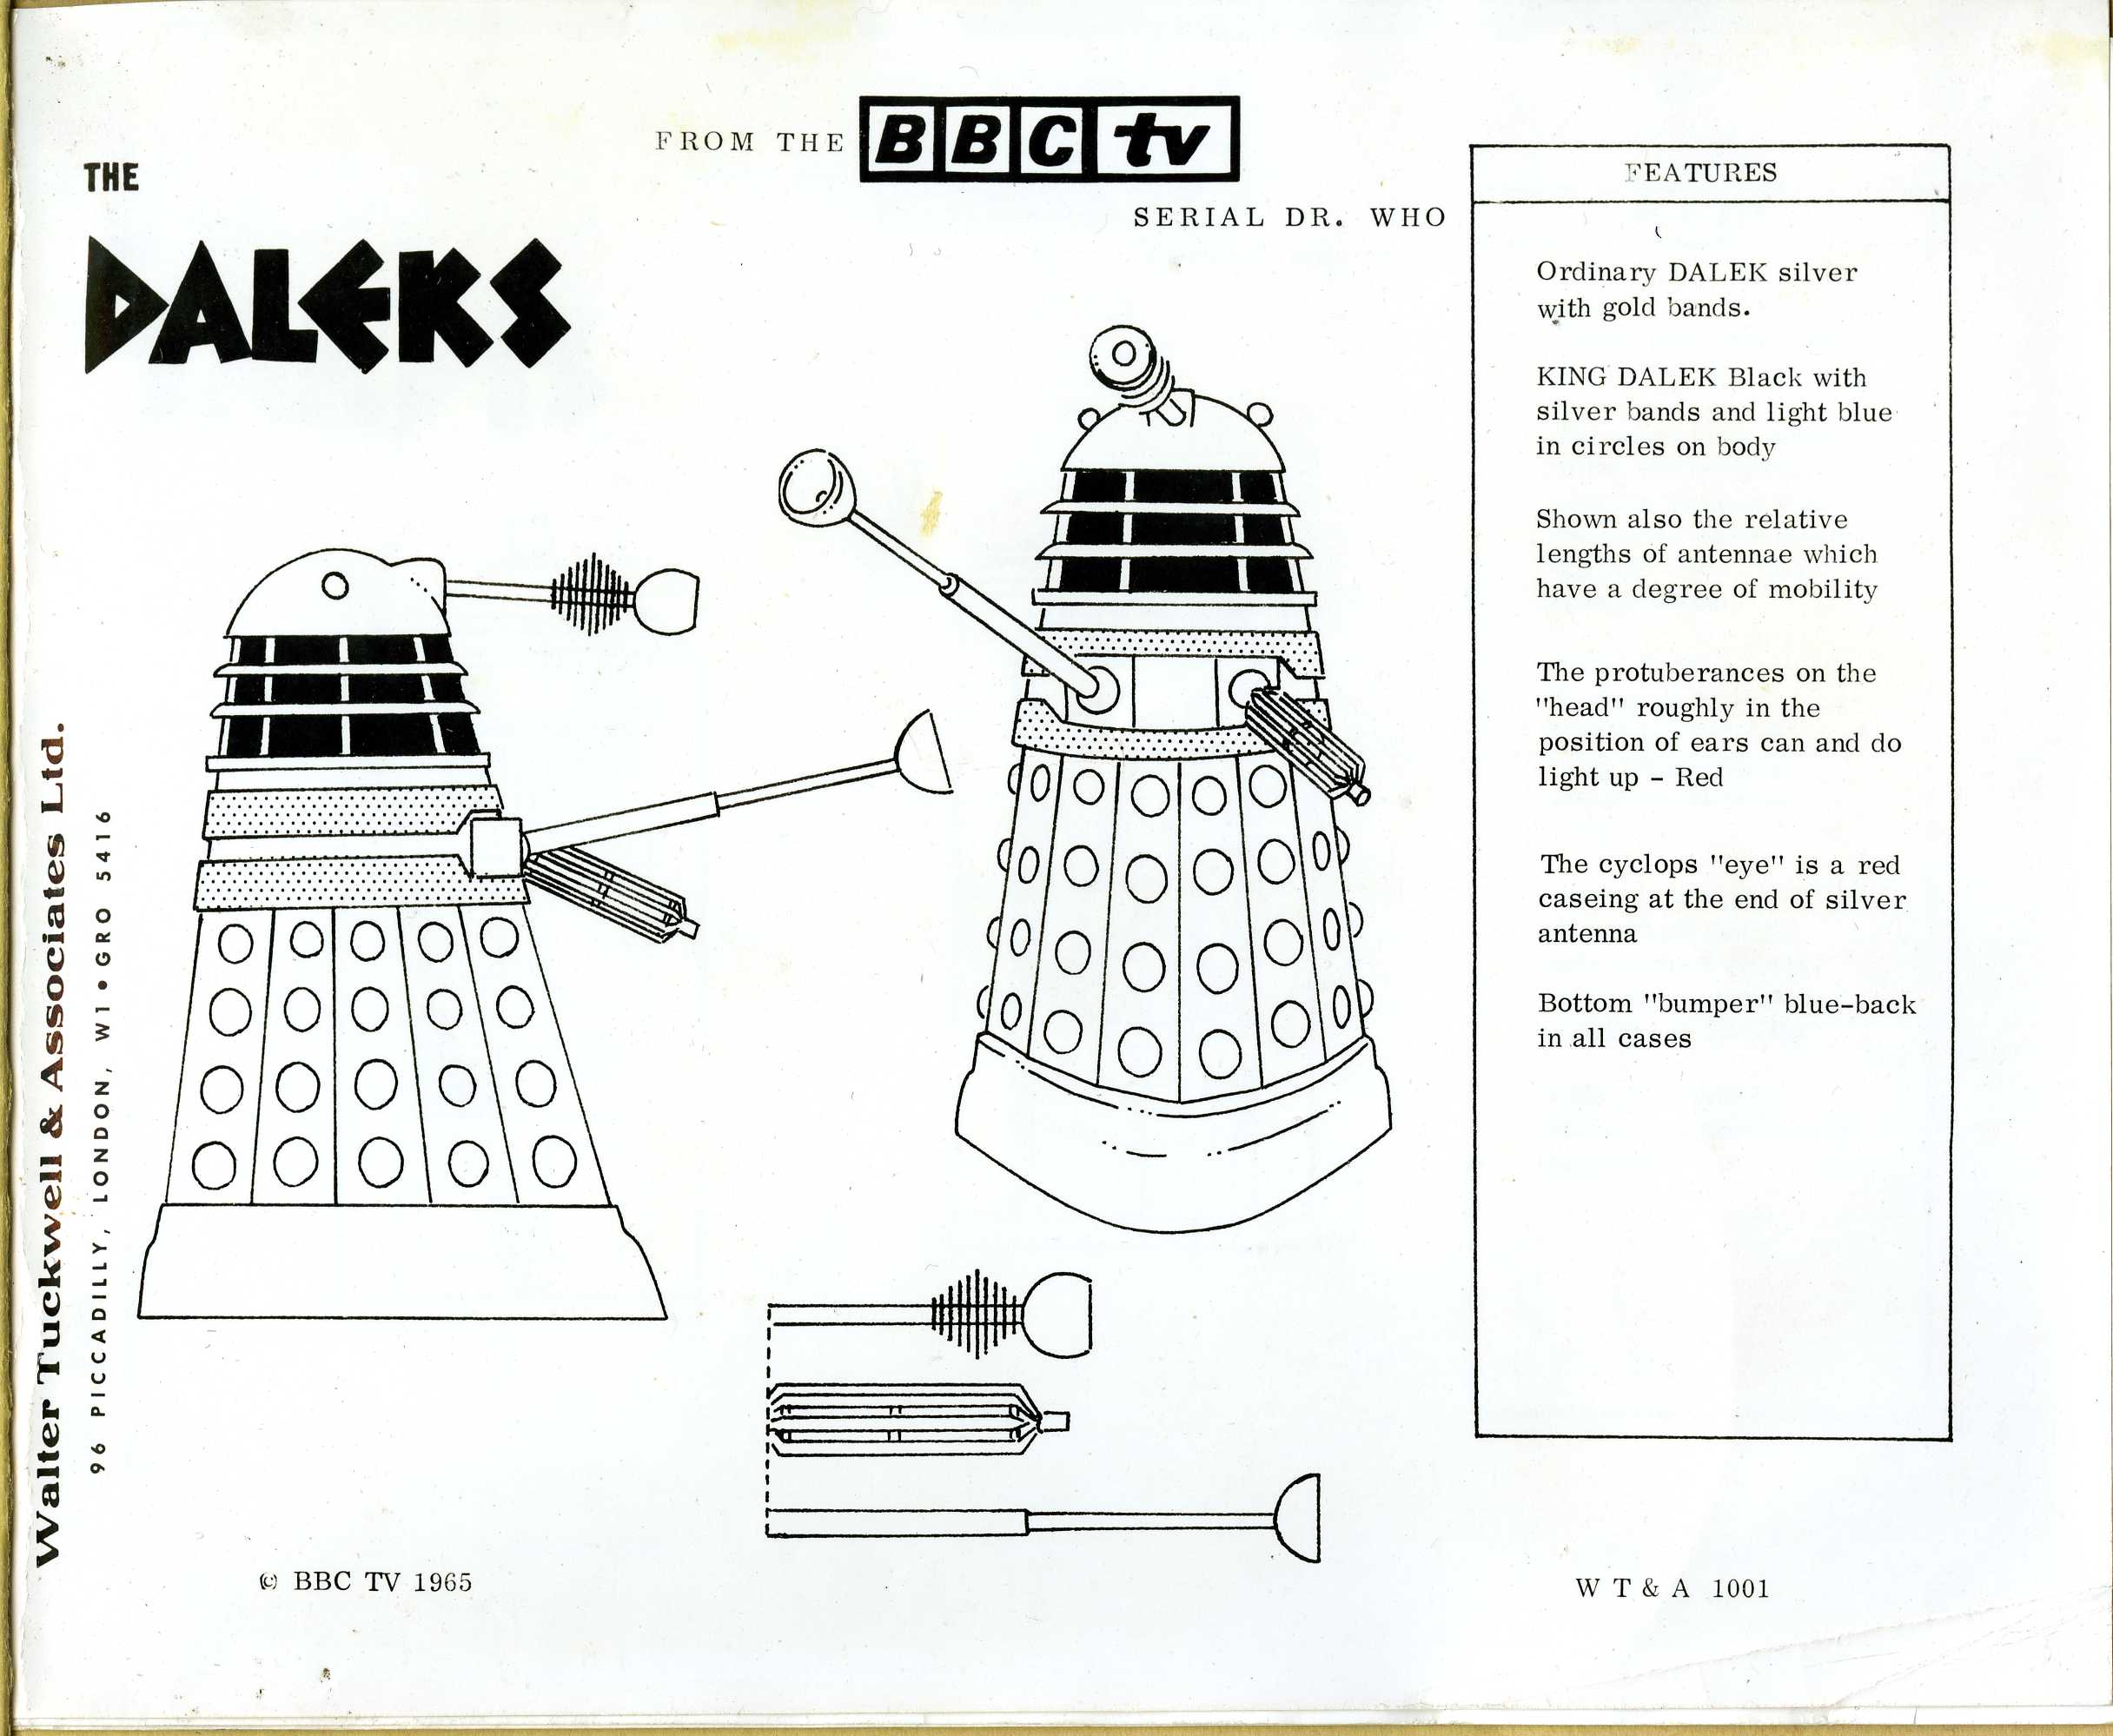 Contents of the Walter Tuckwell & Associates licensing catalogue